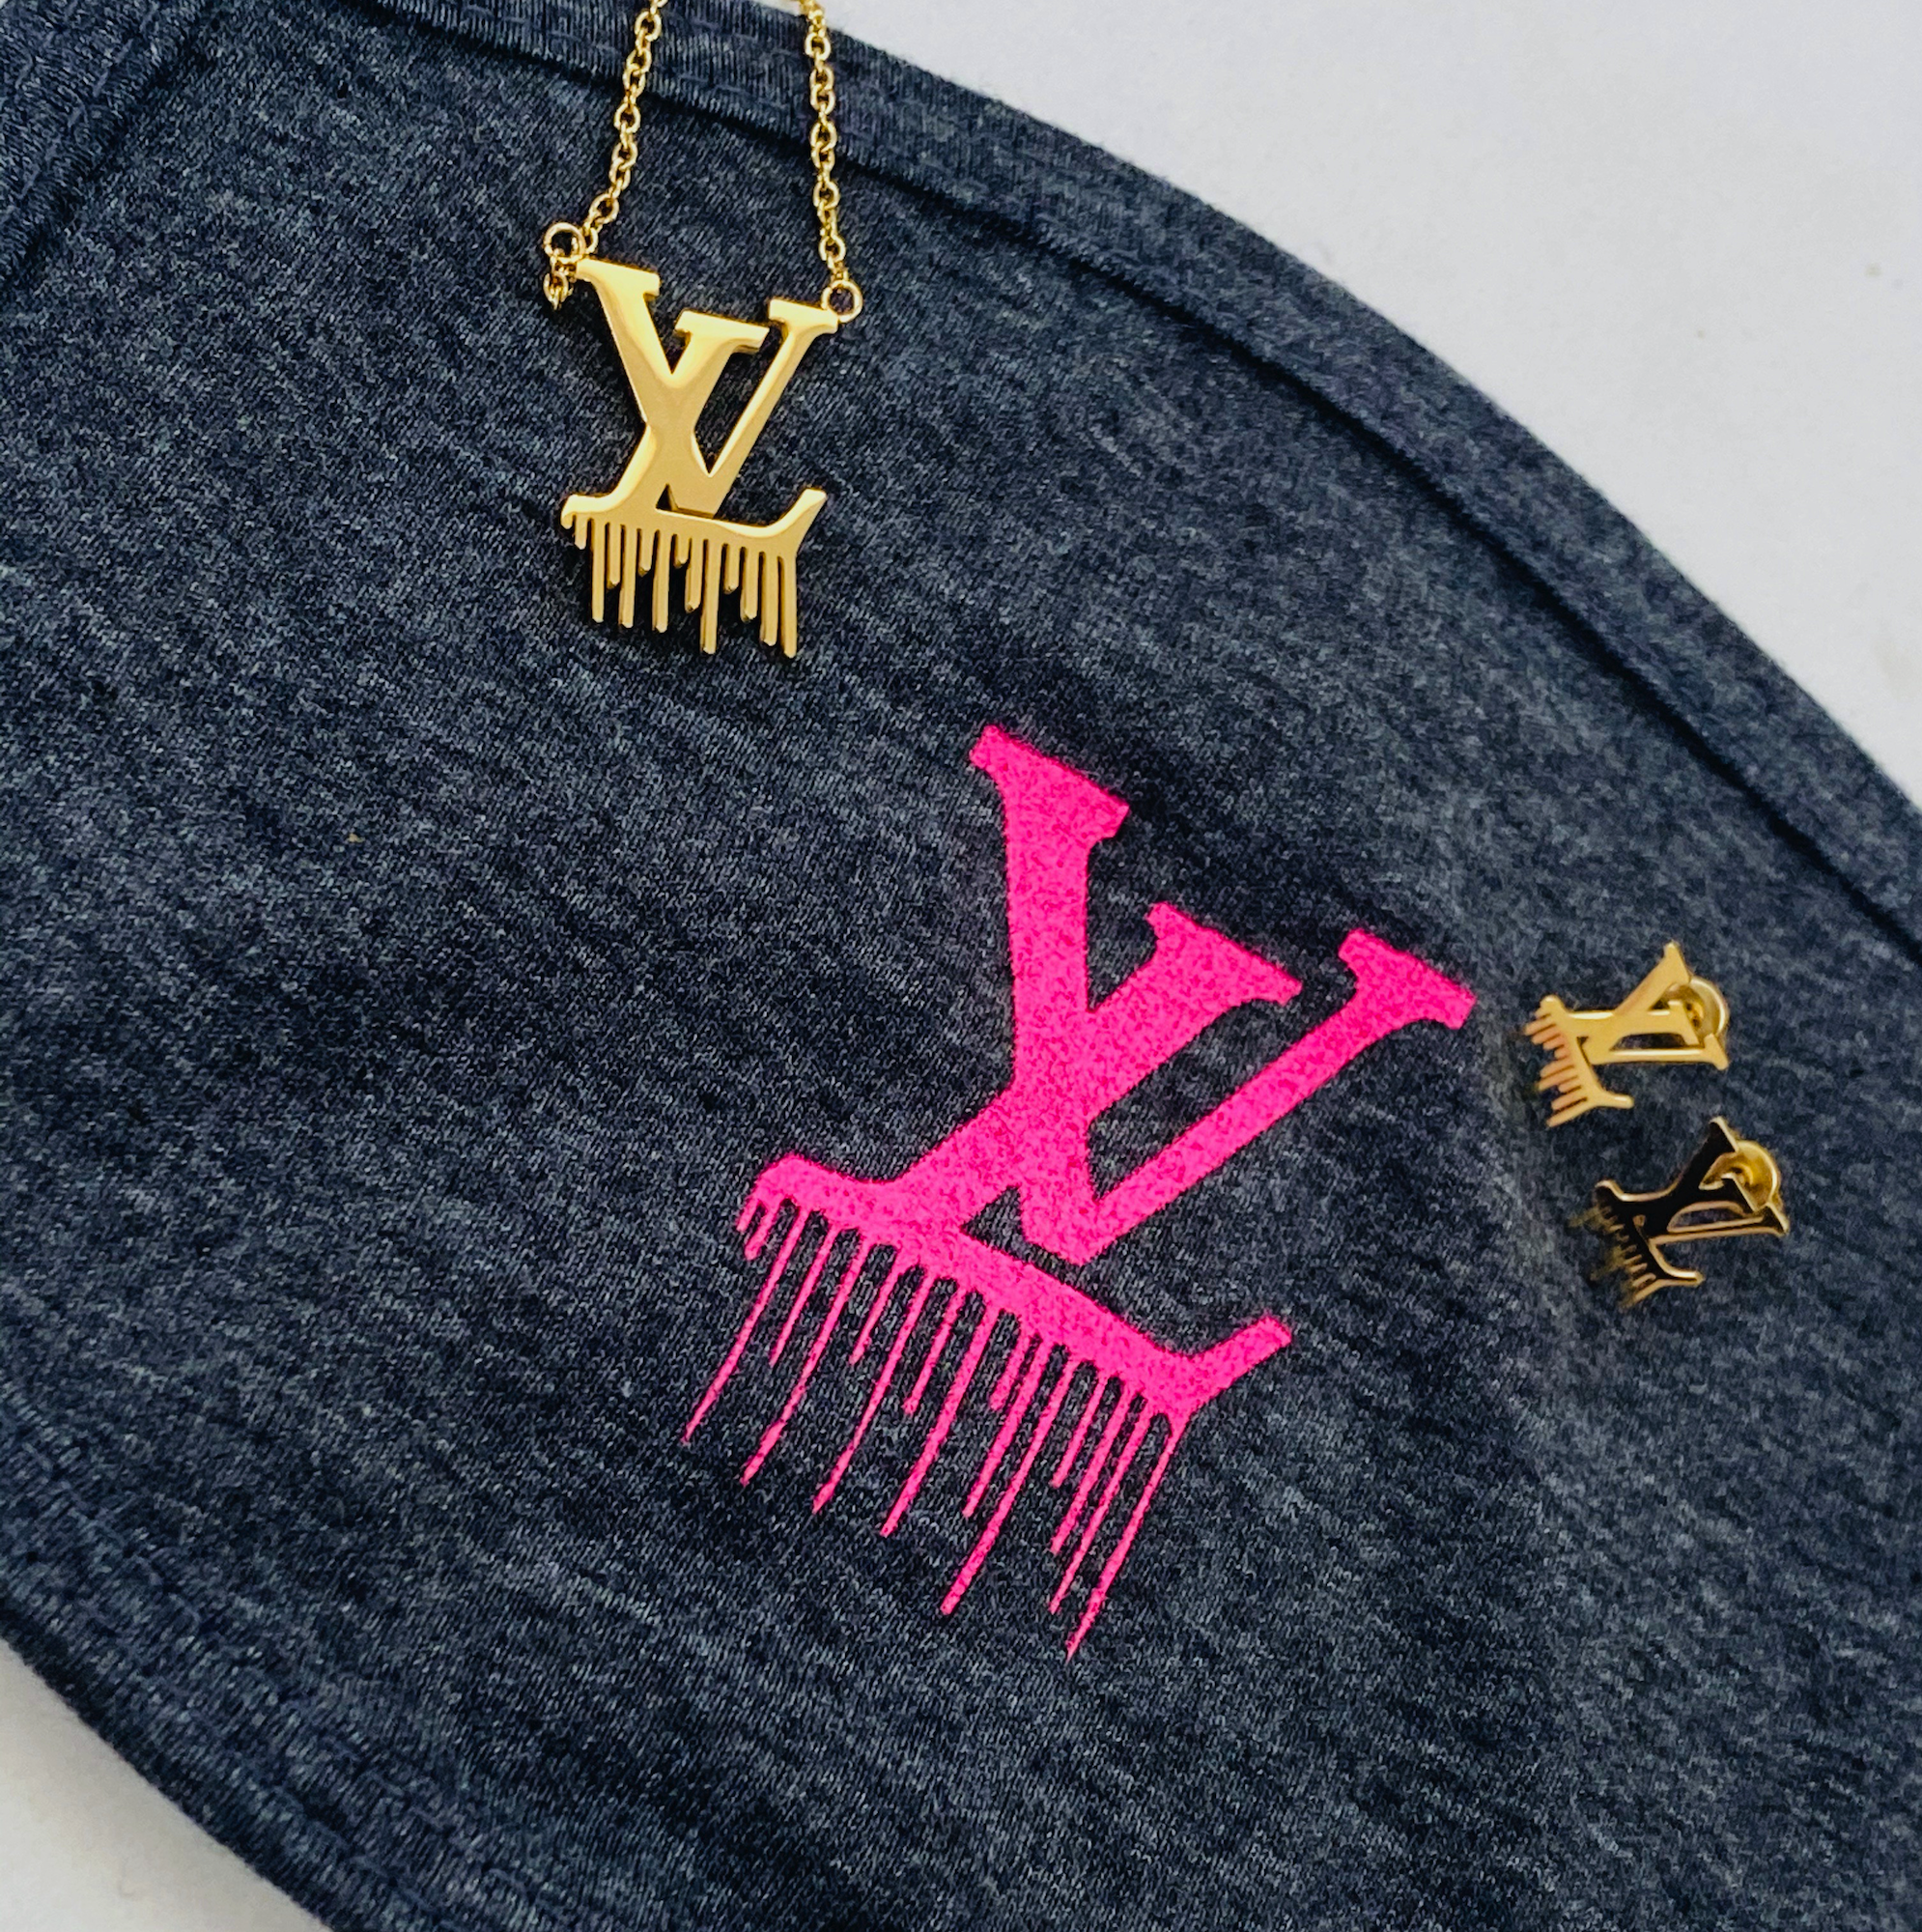 LV Gold Drip Jewelry + Mask Set